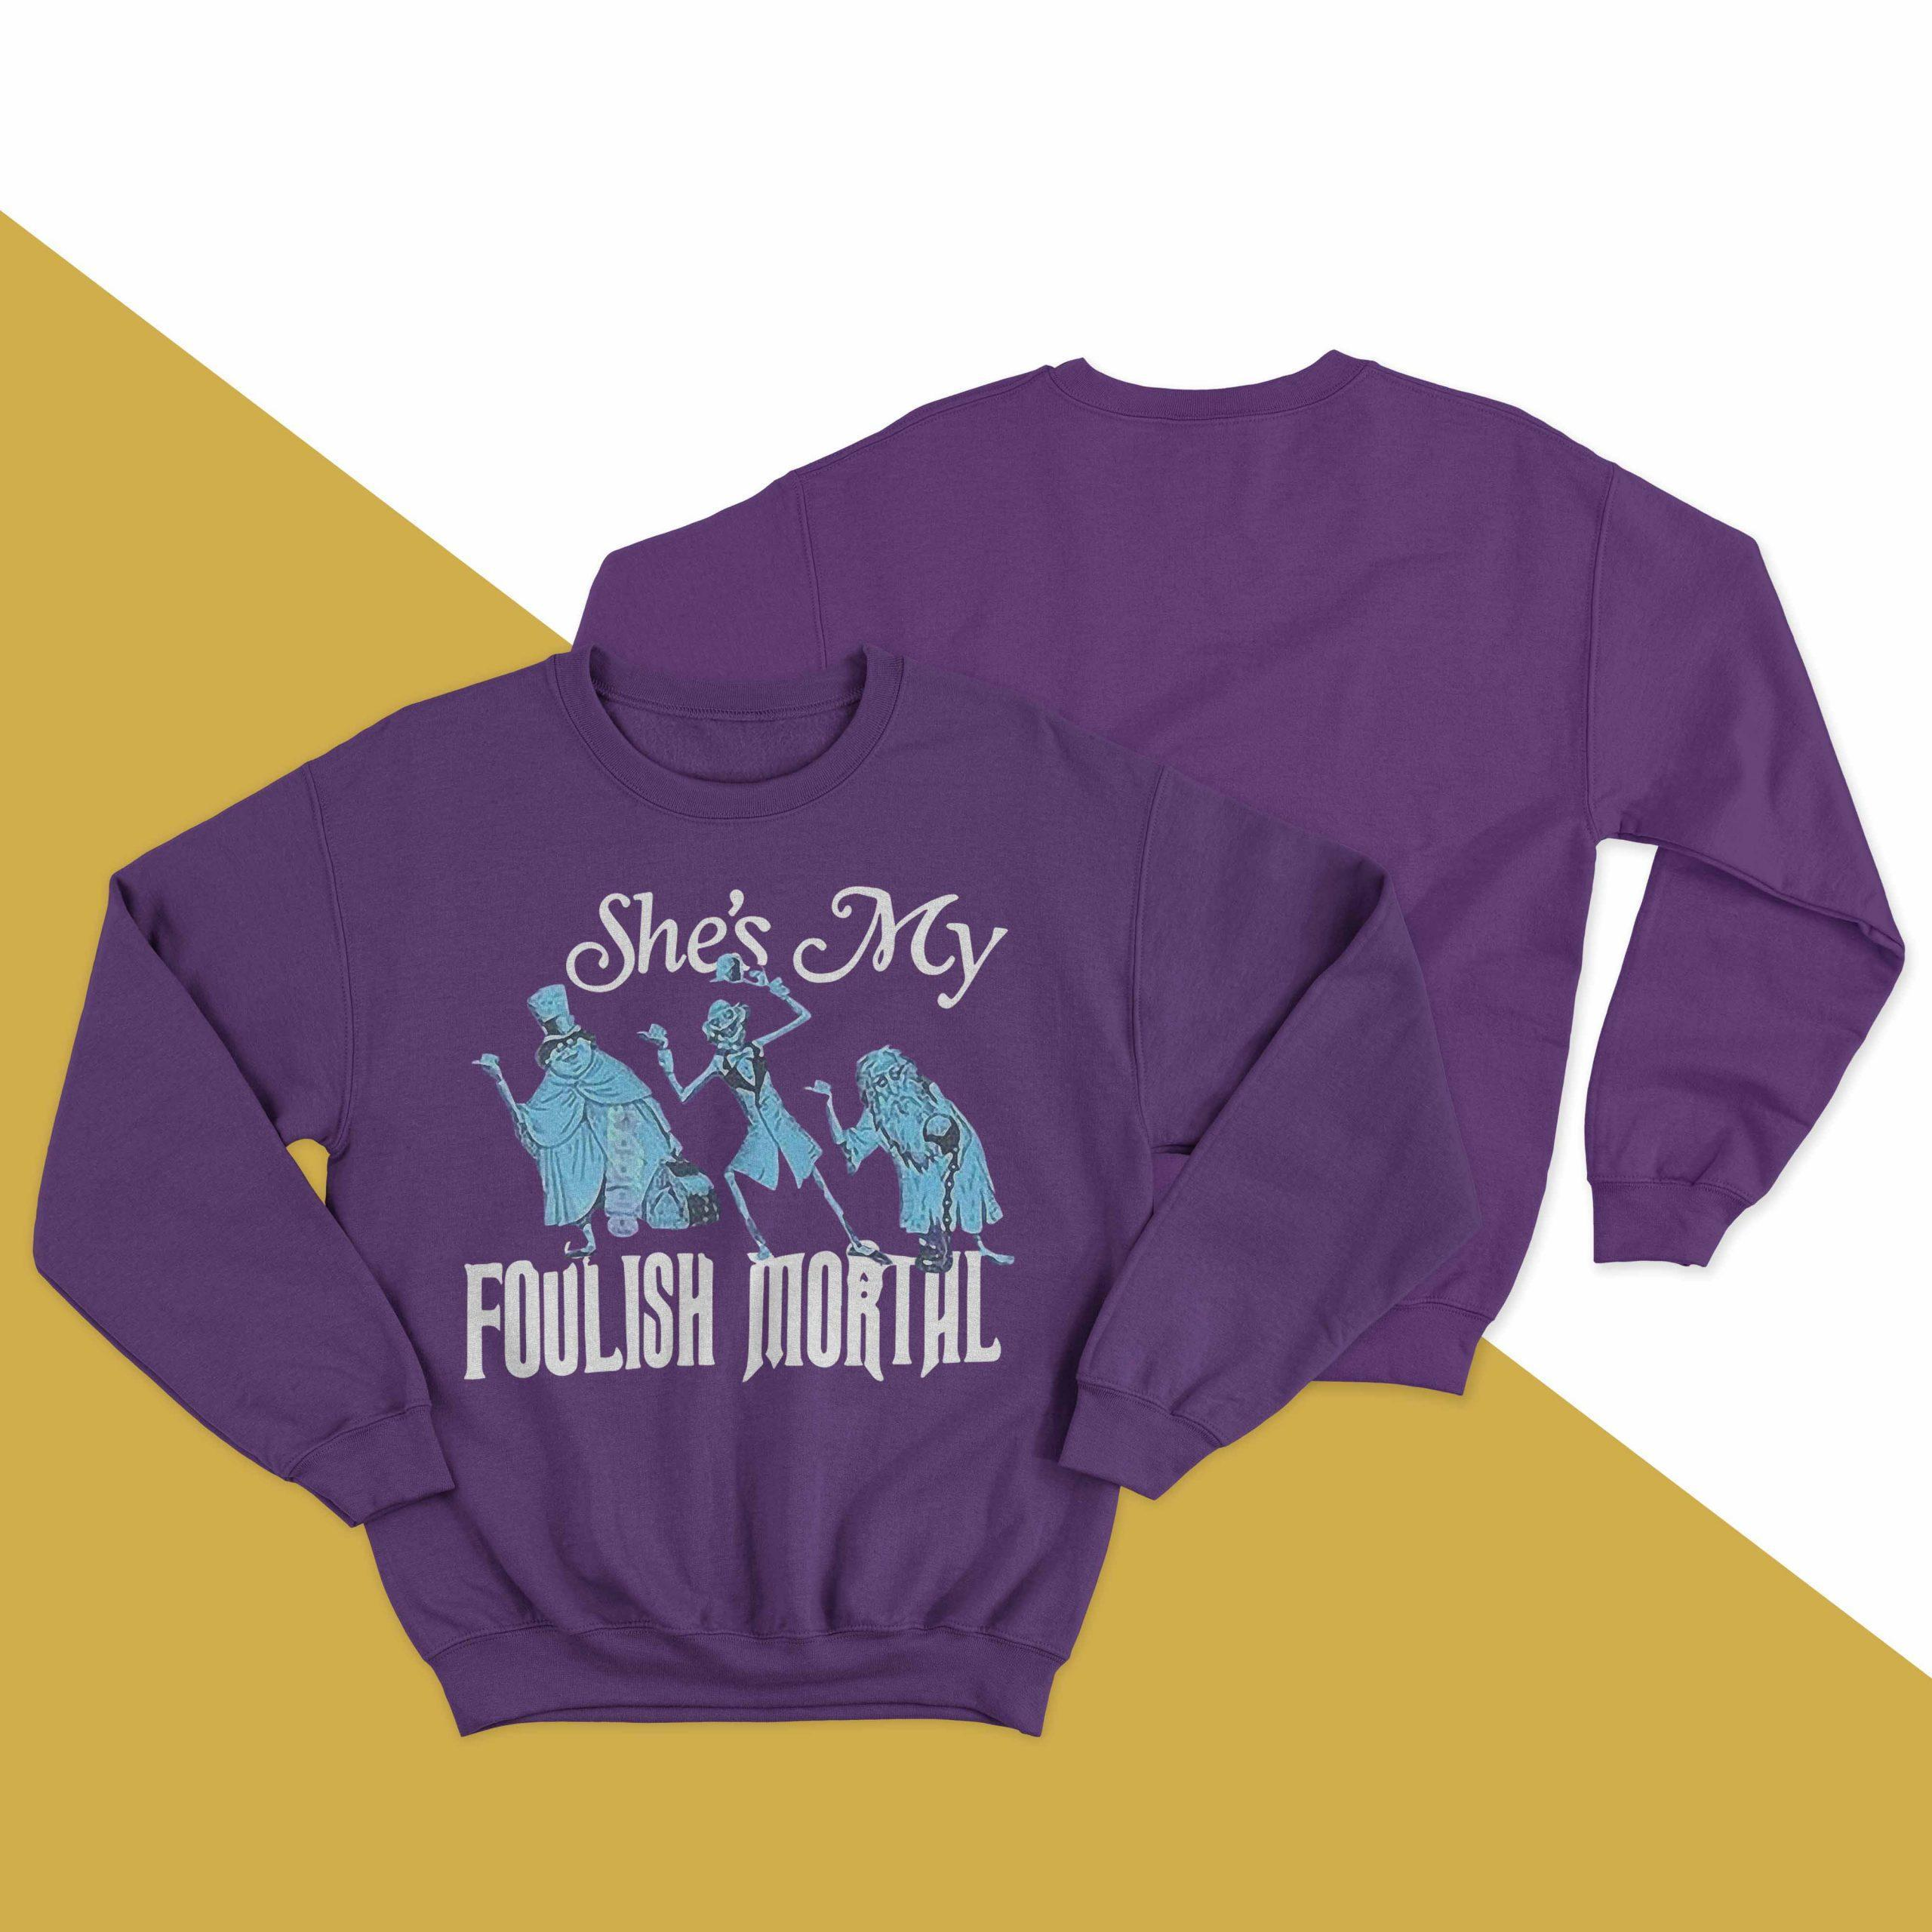 She's My Foolish Mortal Sweater